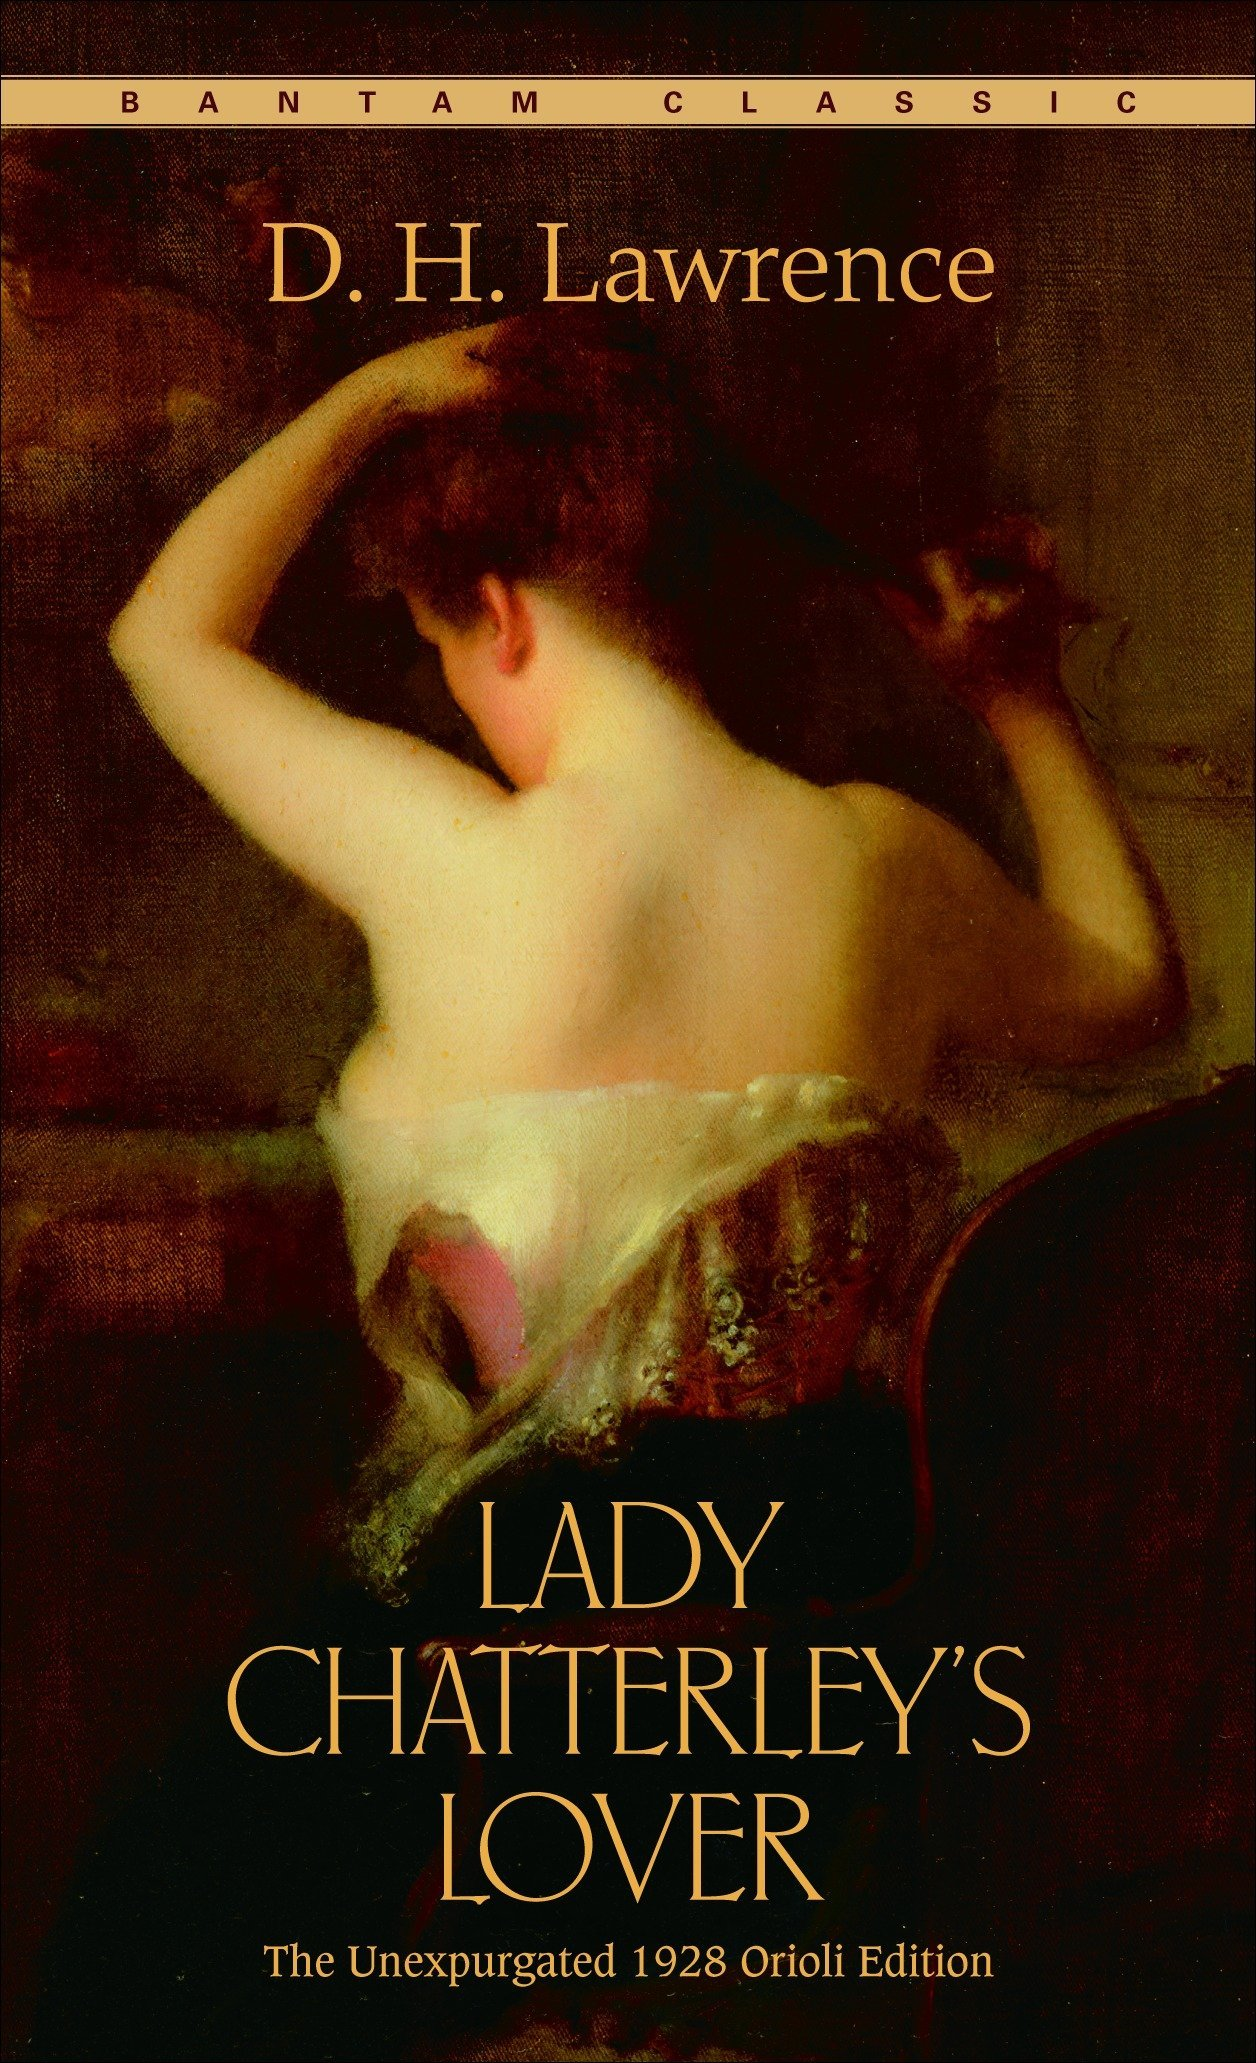 Amazon.fr - Lady Chatterley's Lover - Lawrence, D.H. - Livres